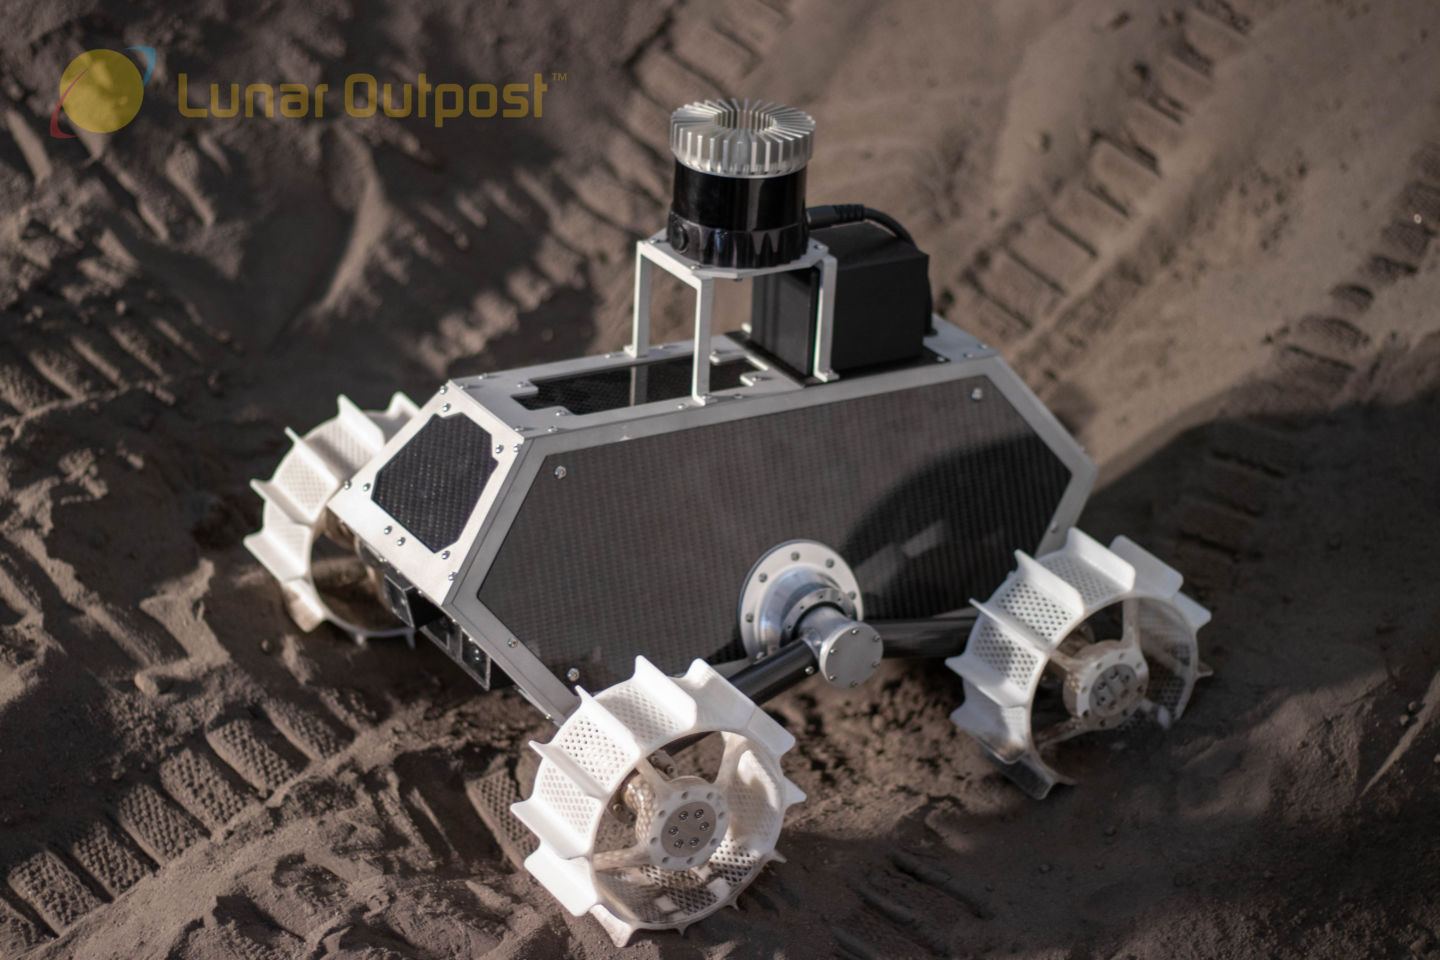 NASA has decided on the participants for its mini-lunar competition.